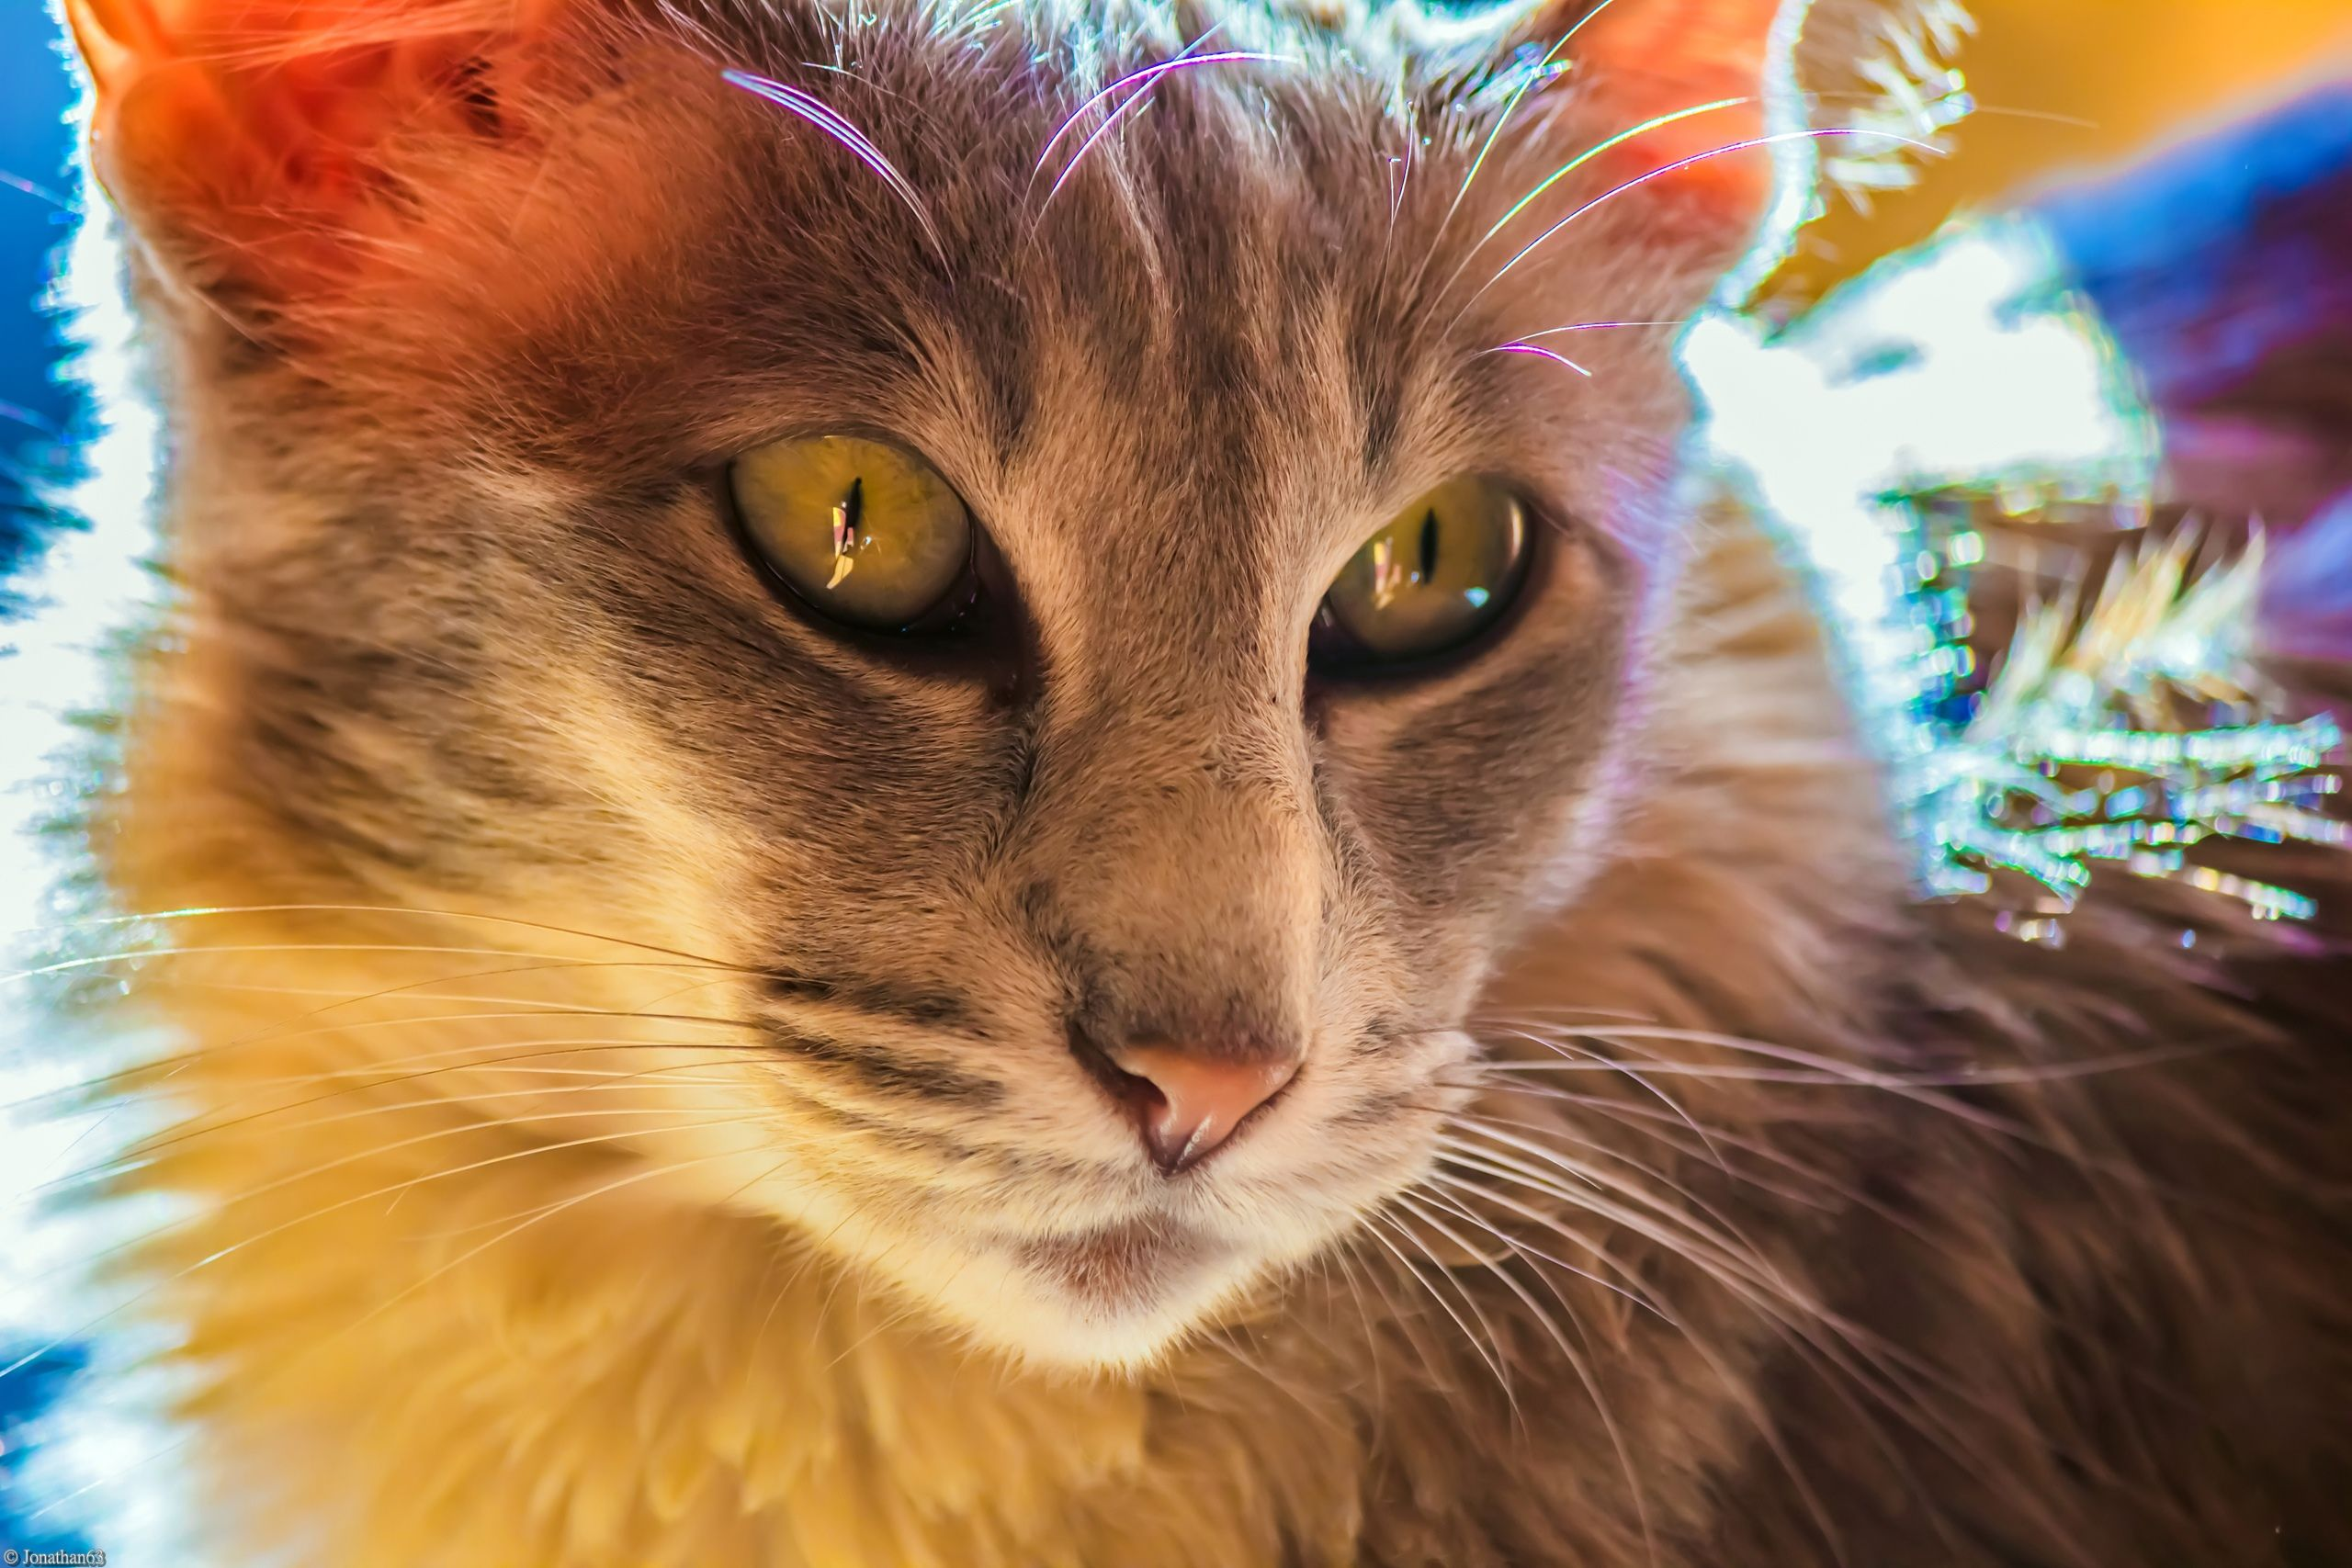 Wallpapers Animals Cats - Kittens